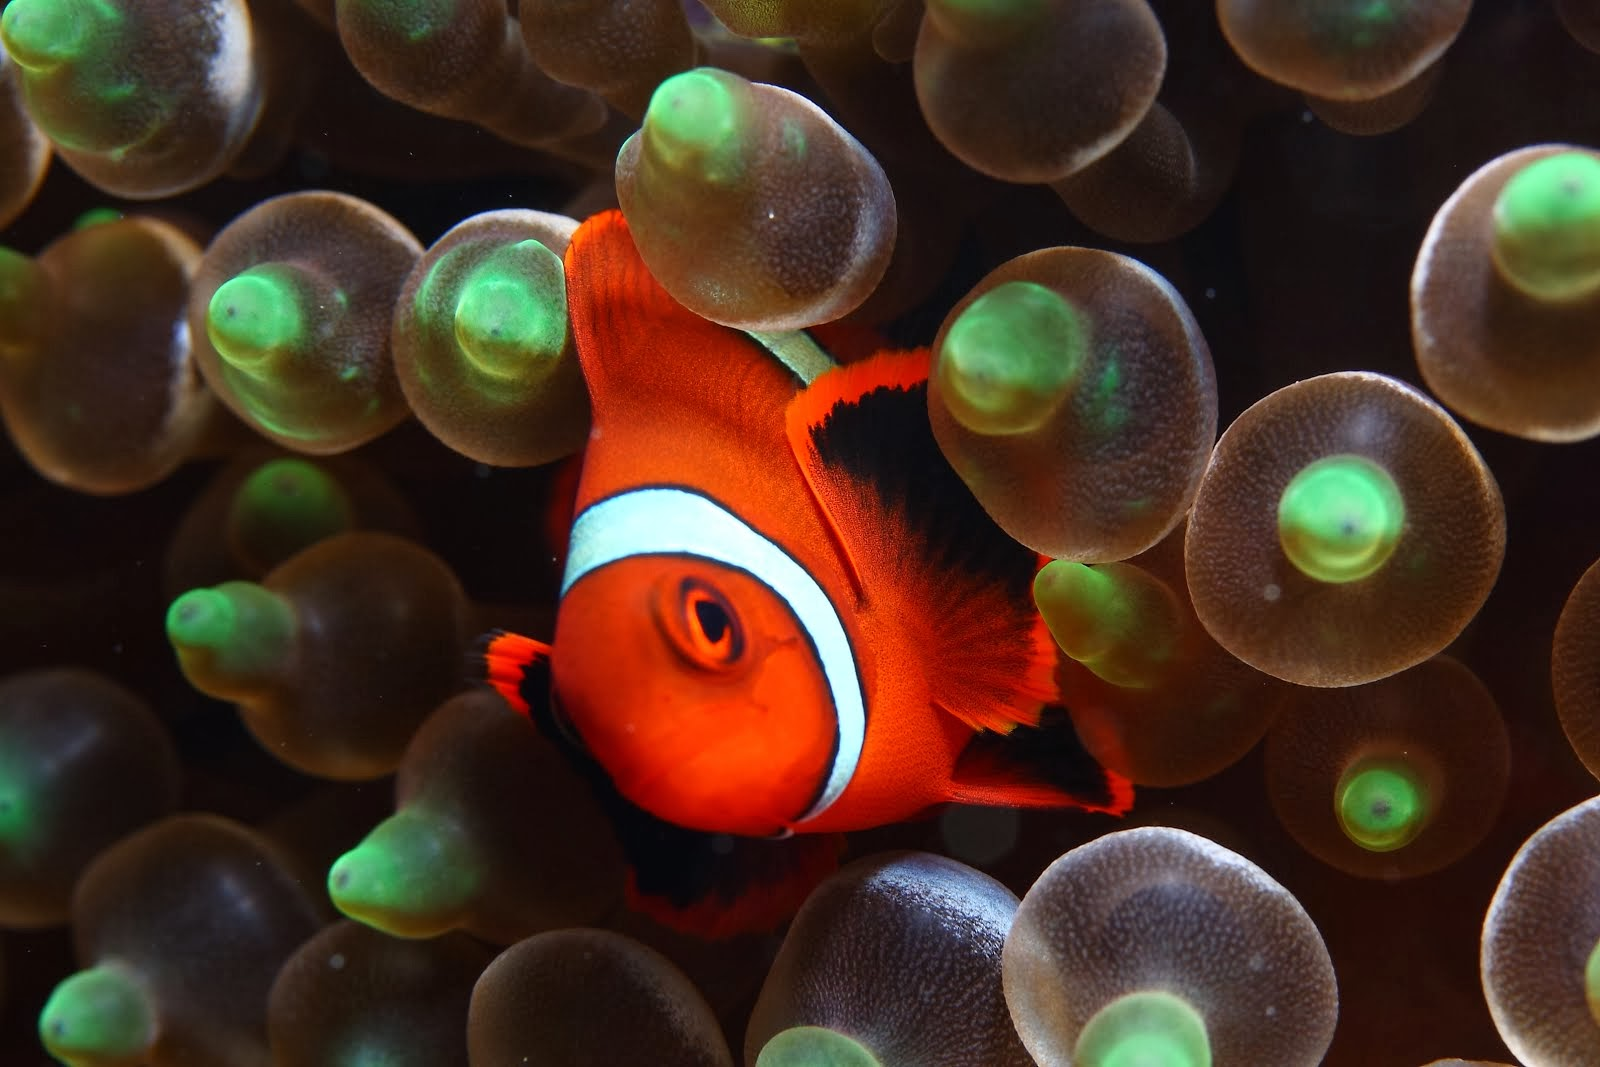 Pez Payaso / Clown fish